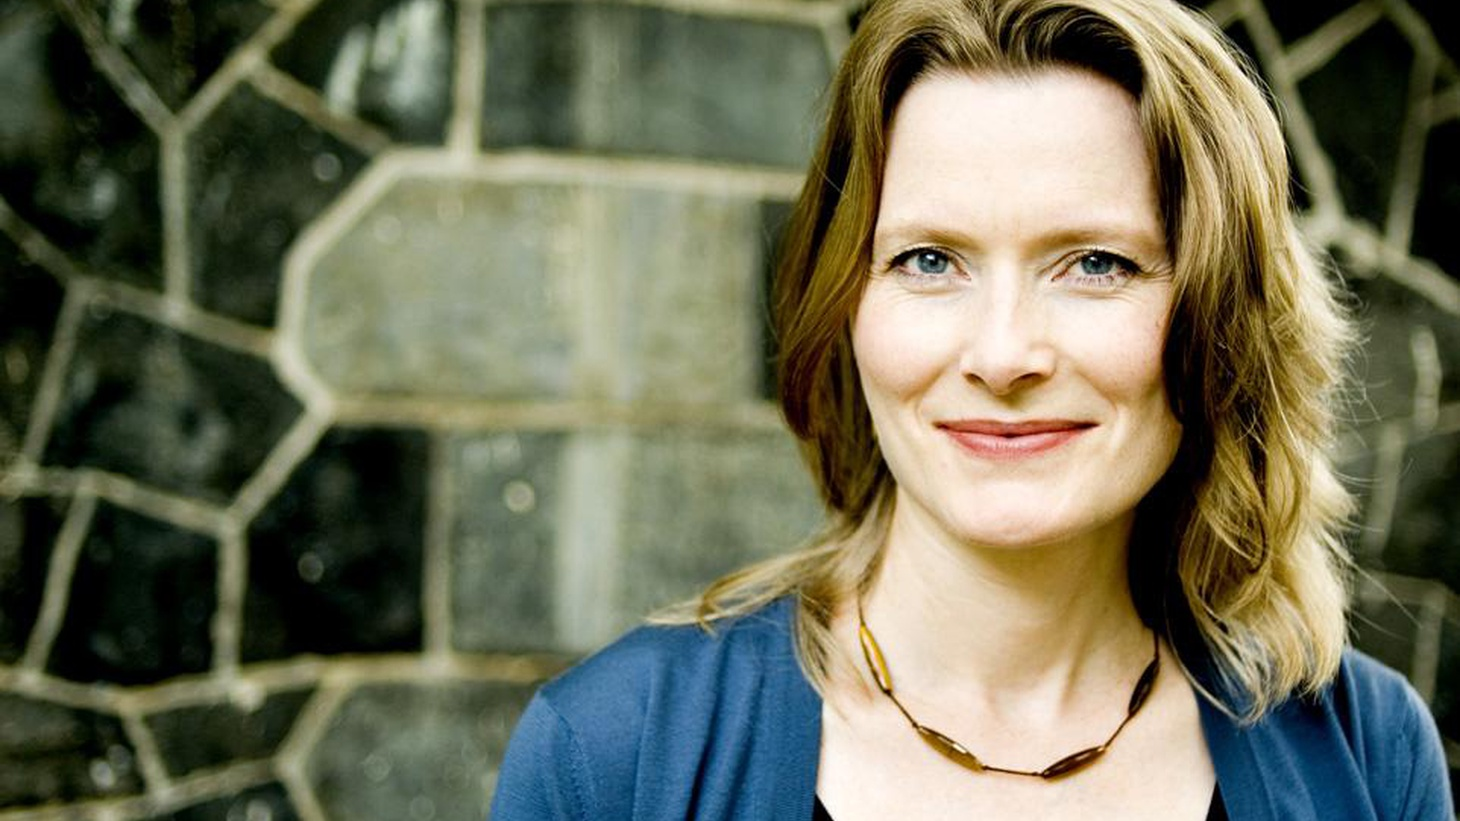 Jennifer Egan researched classic Gothic fiction to develop a style that would deepen the terrors at the core of her new novel...